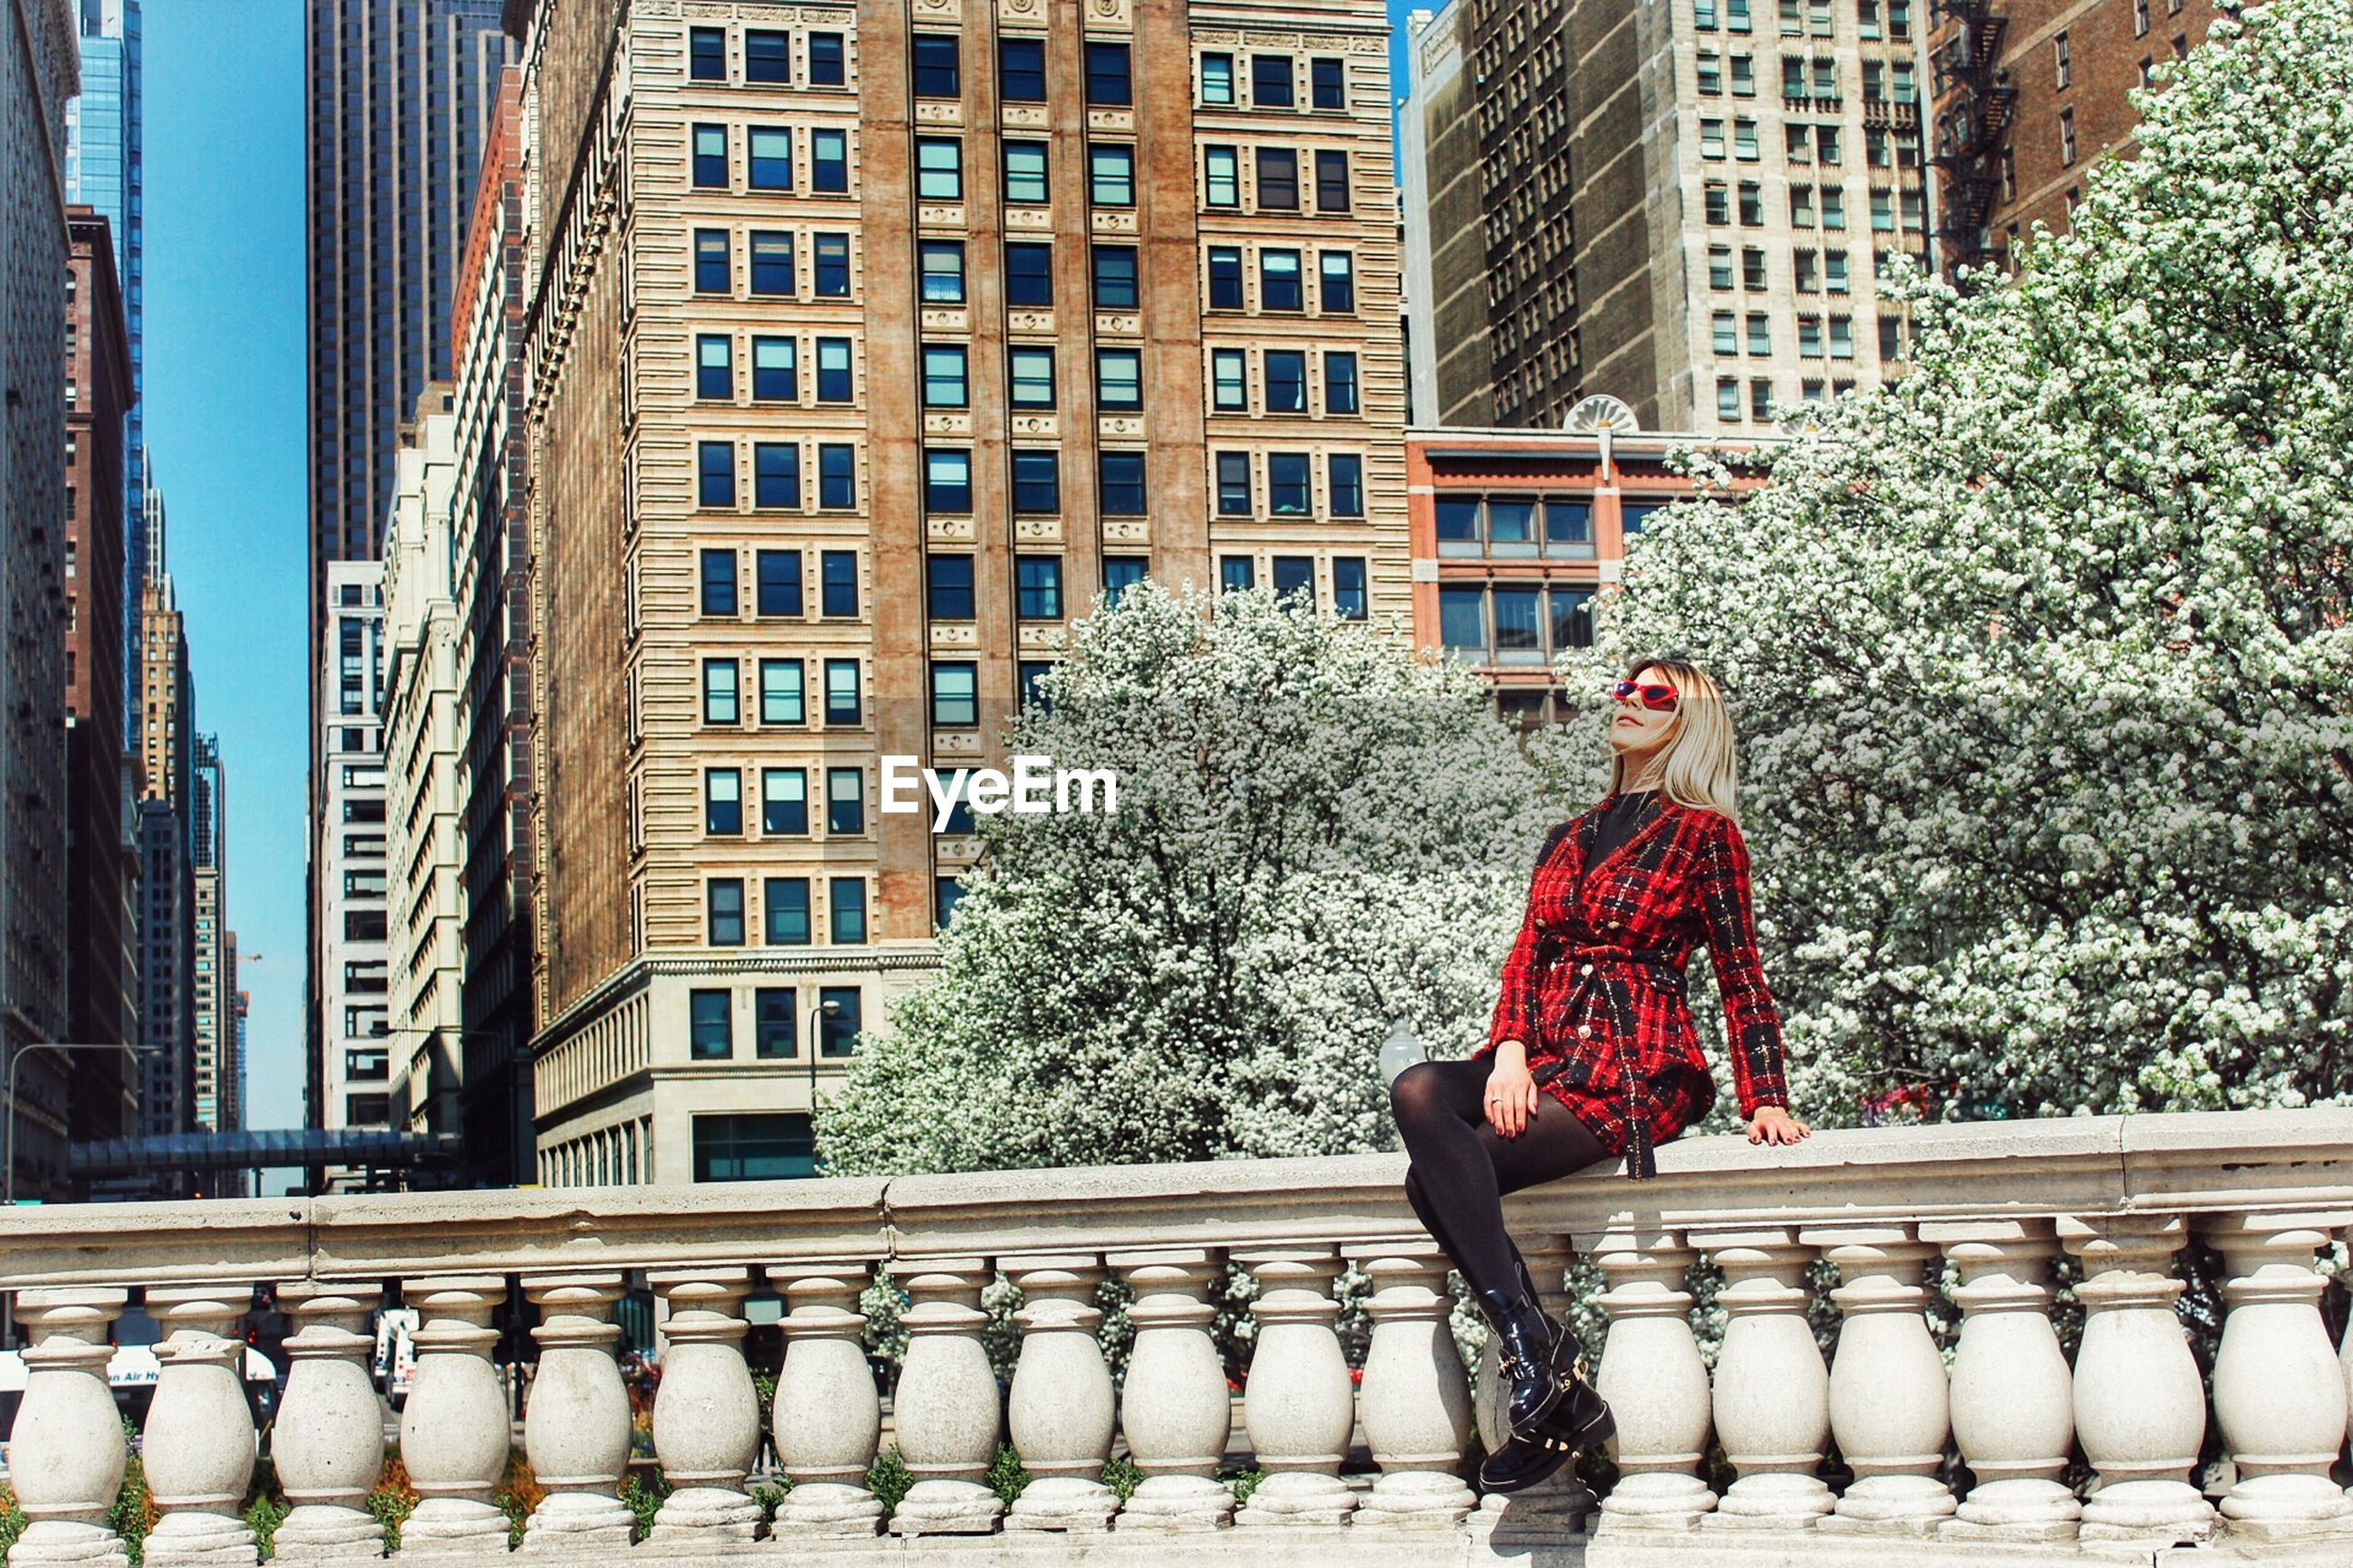 Fashionable woman sitting on retaining wall in city